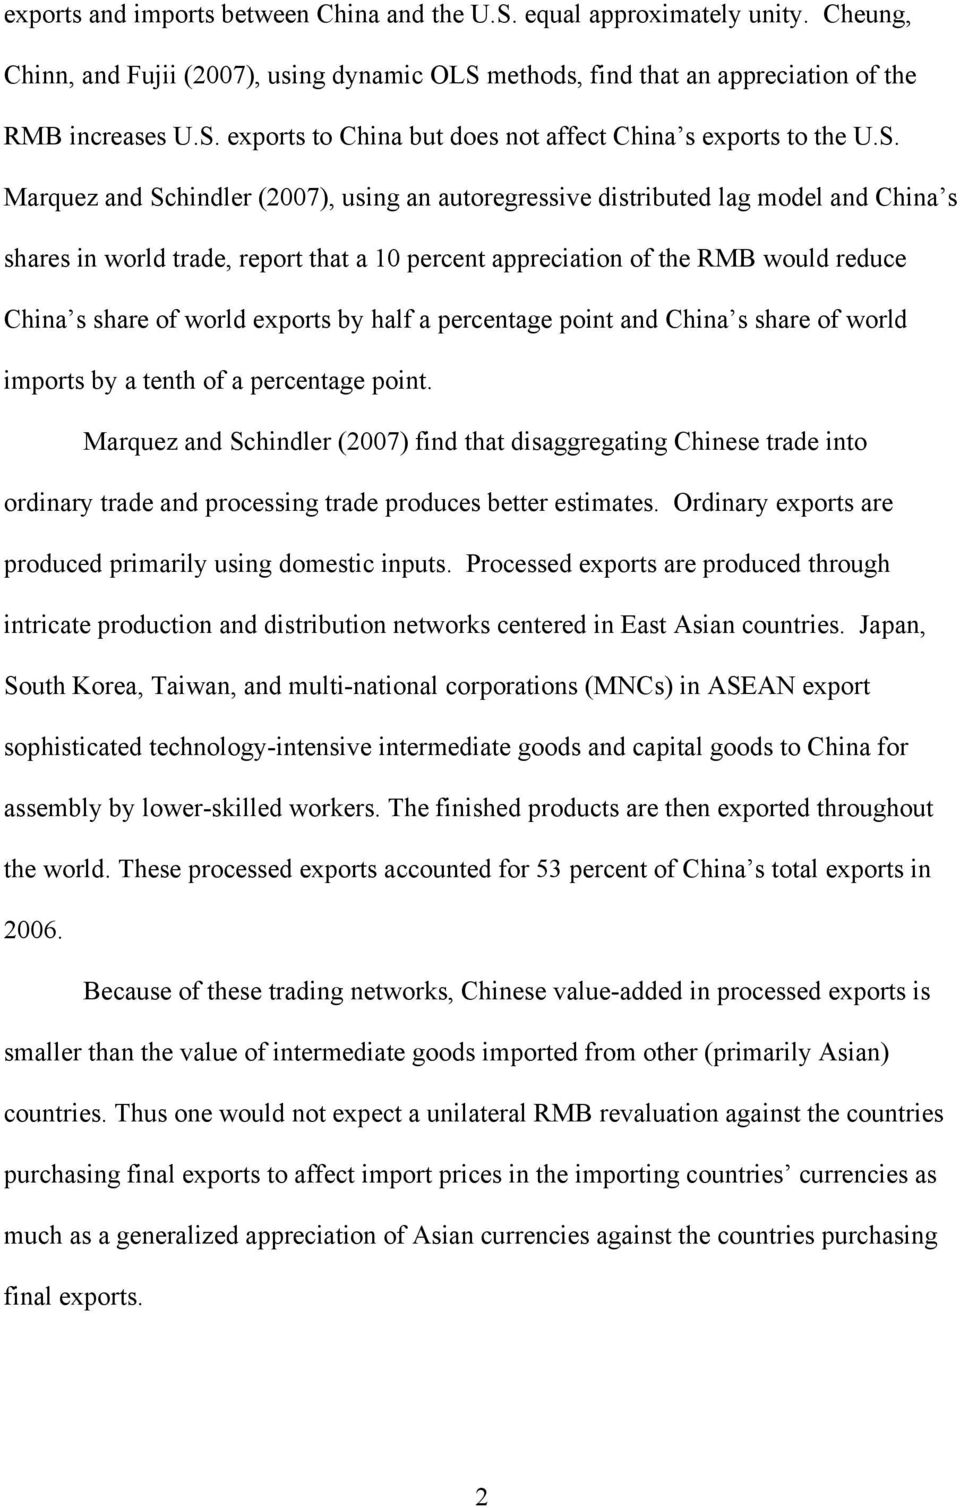 half a percenage poin and China s share of world impors by a enh of a percenage poin.